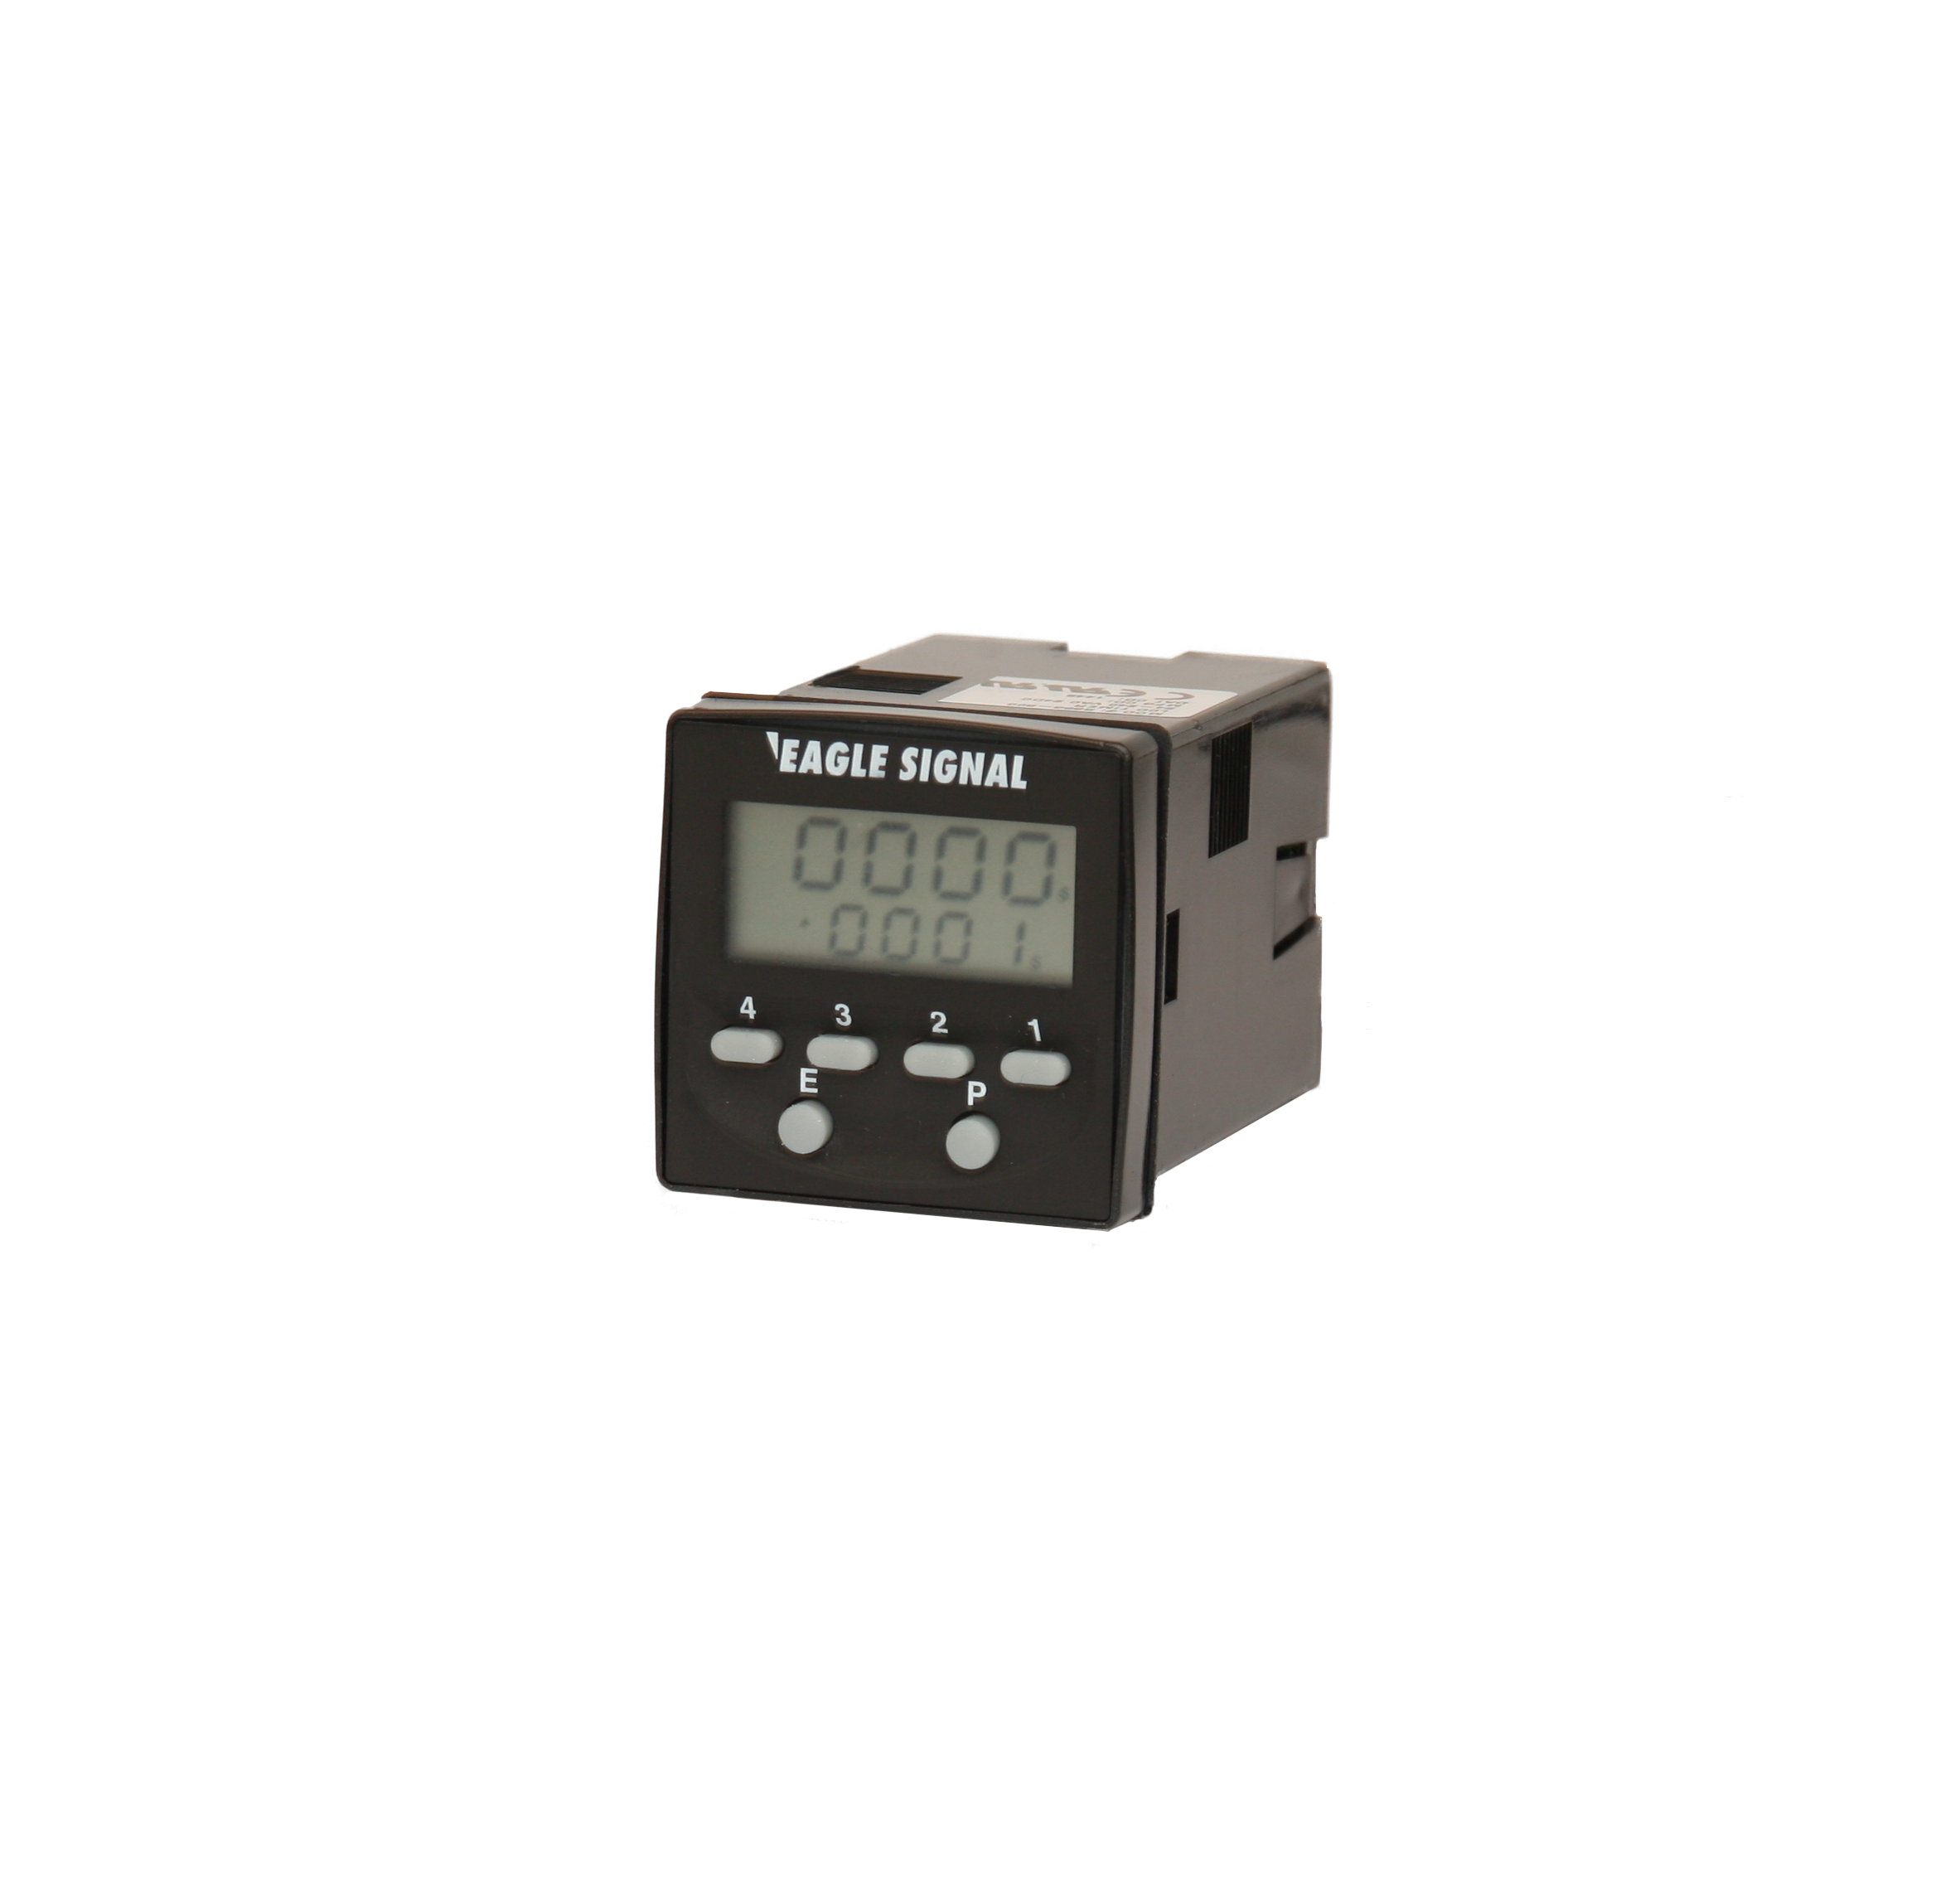 Wondrous Eagle Signal Electronic Timers B856 Multi Function Timer Wiring 101 Picalhutpaaxxcnl